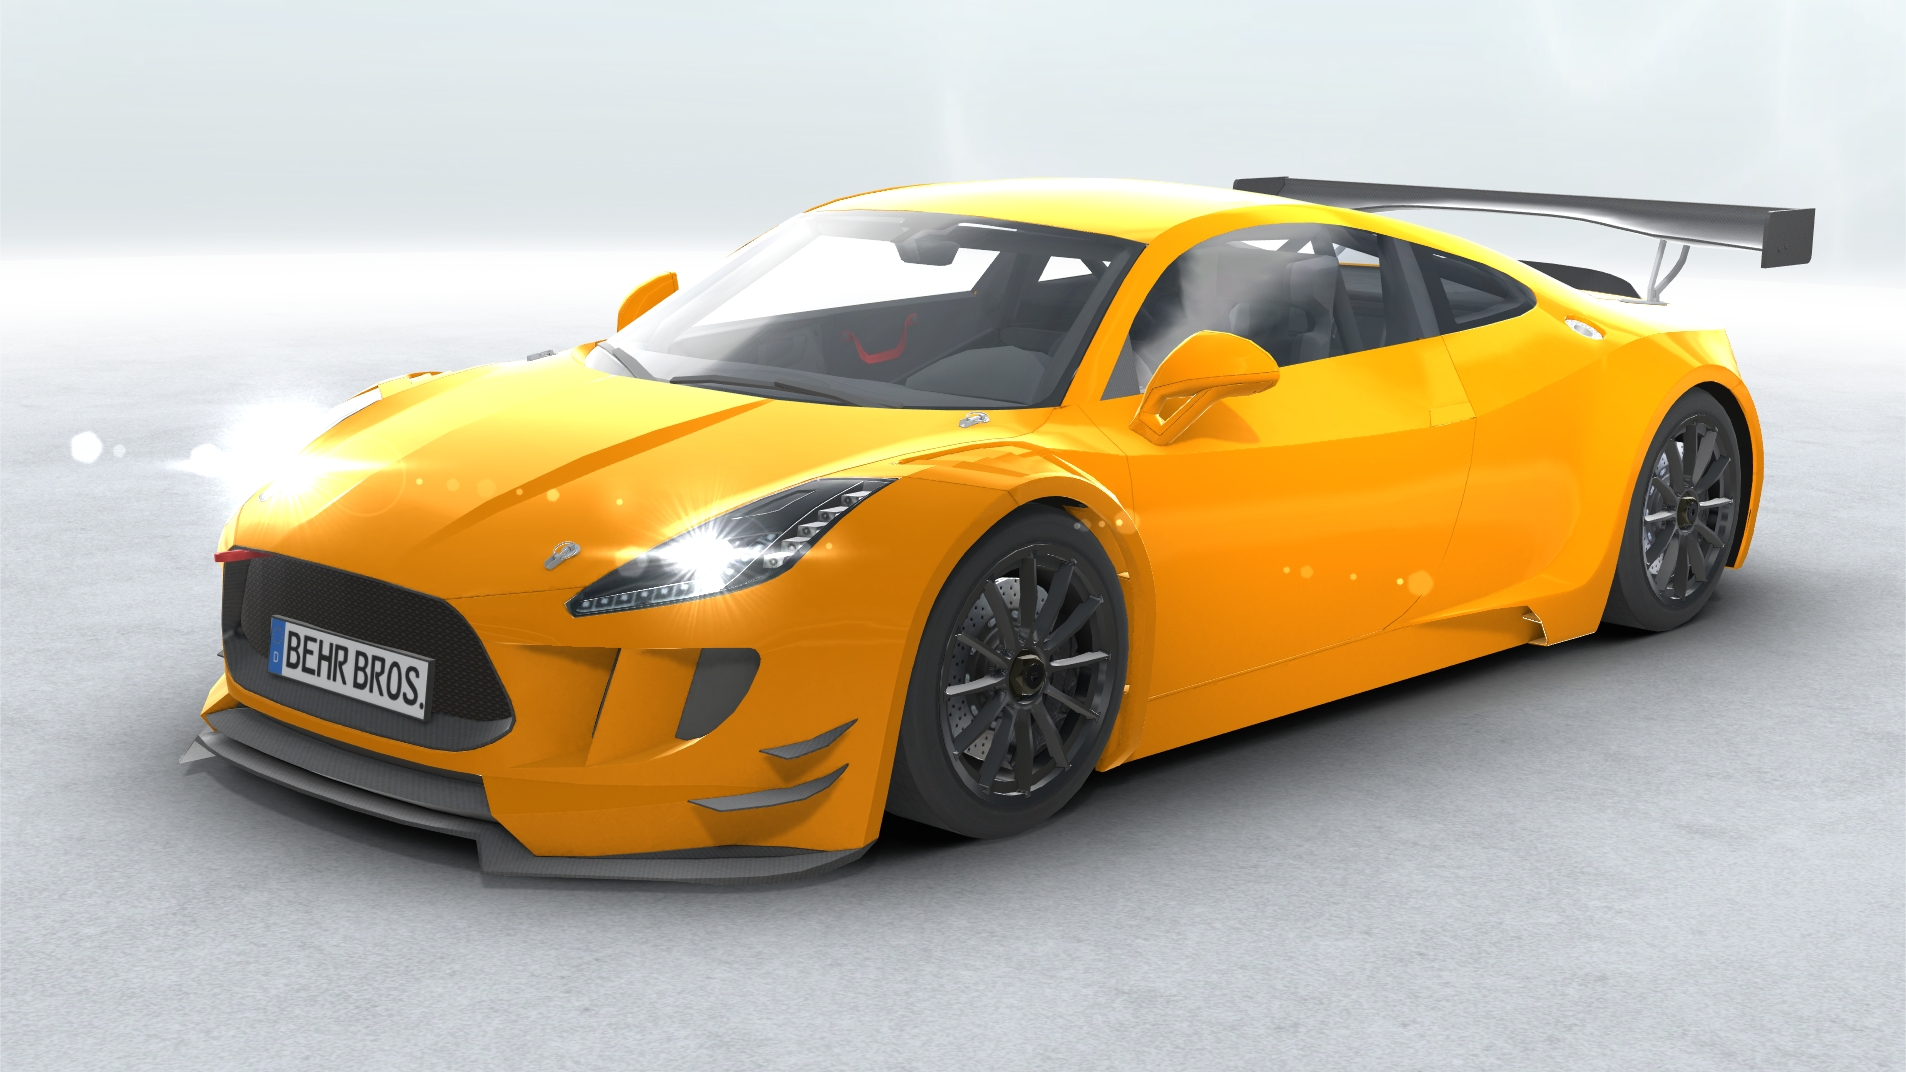 generic sports car gt3 realtime 3d model 3ds max fbx c4d lwo ma mb other obj 223728